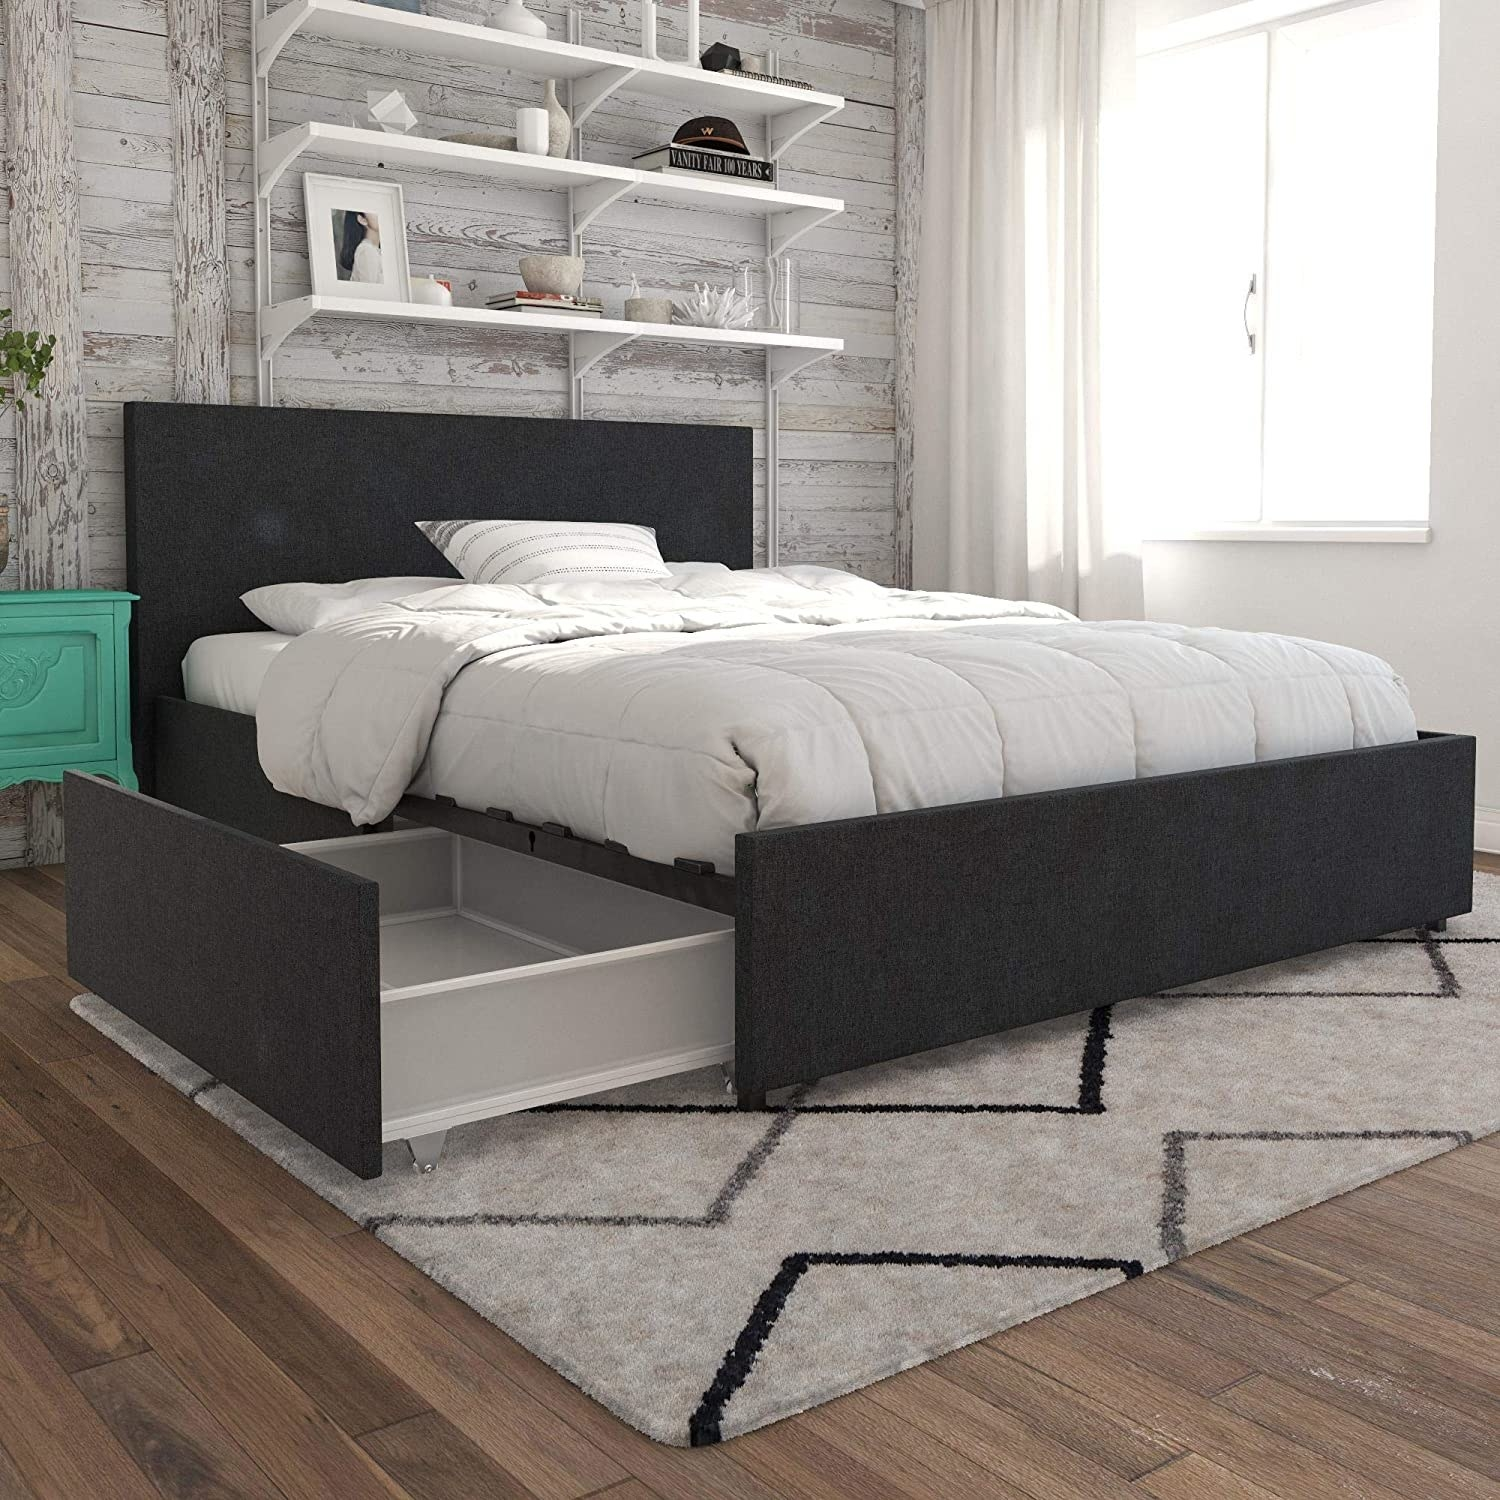 the bed with drawers open under it